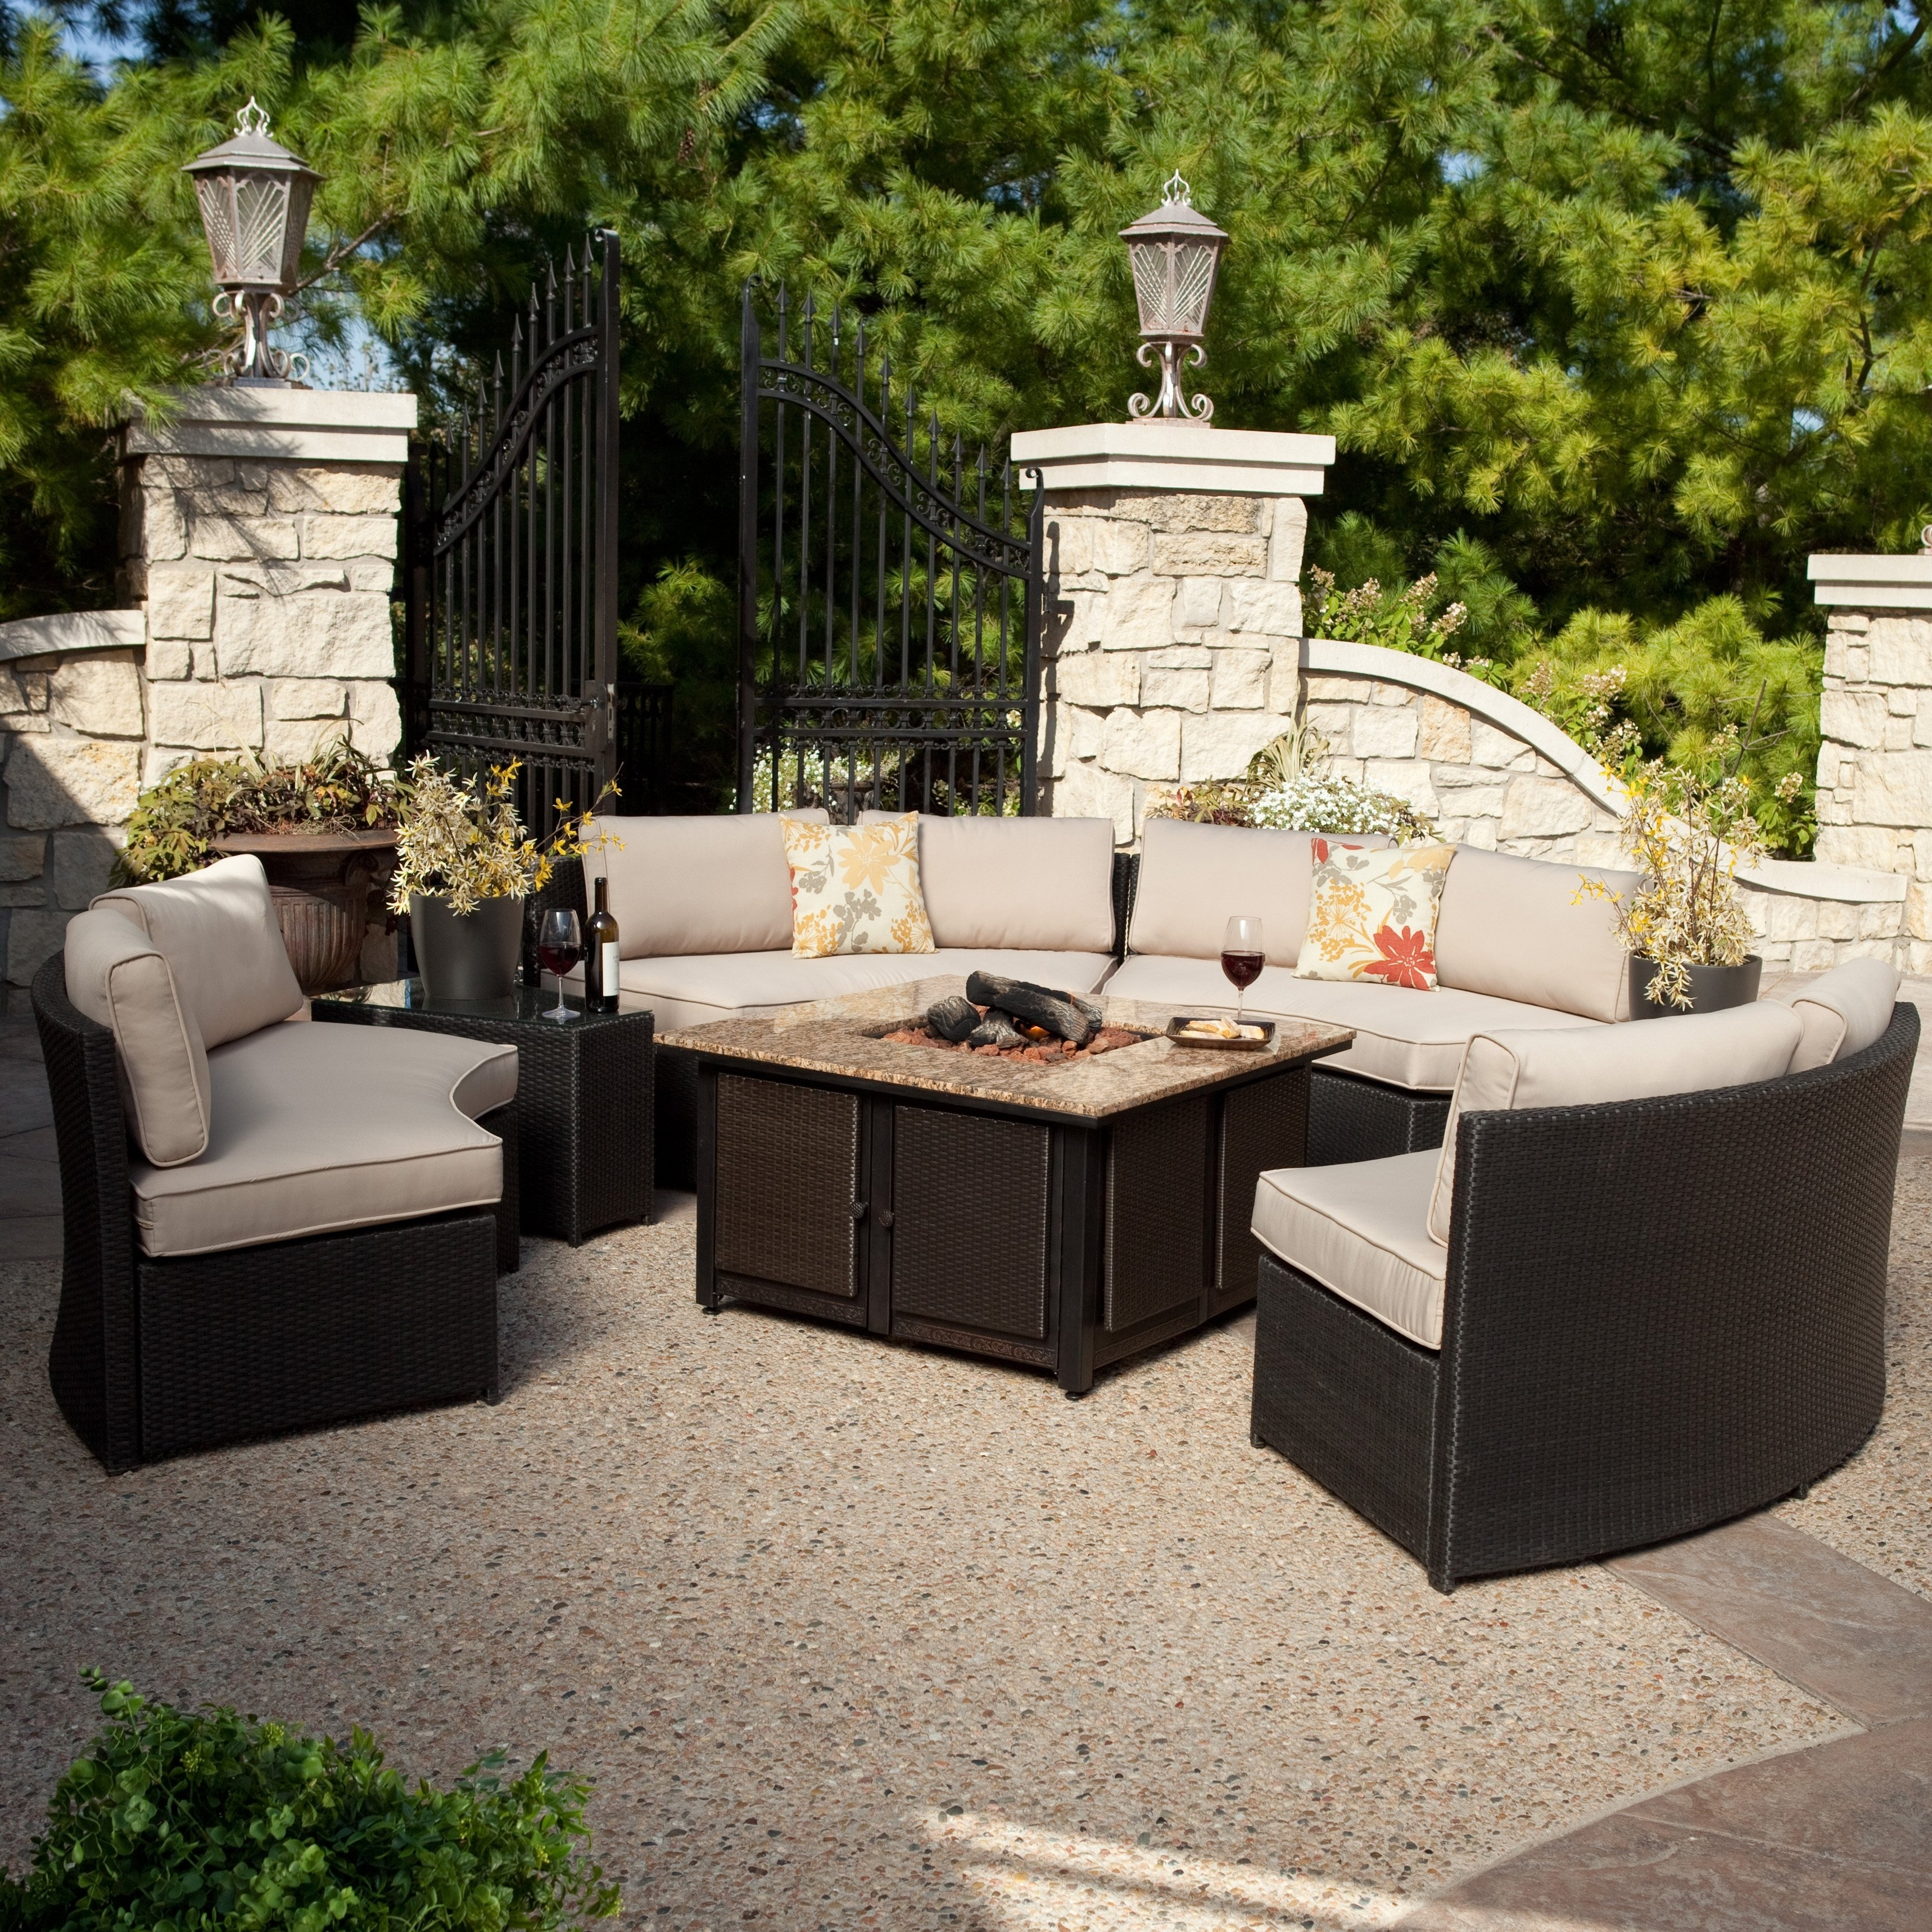 2018 Beautiful Fire Pit Conversation Sets Patio Tall Stone Seating Around In Patio Conversation Sets With Fire Pit (View 2 of 15)